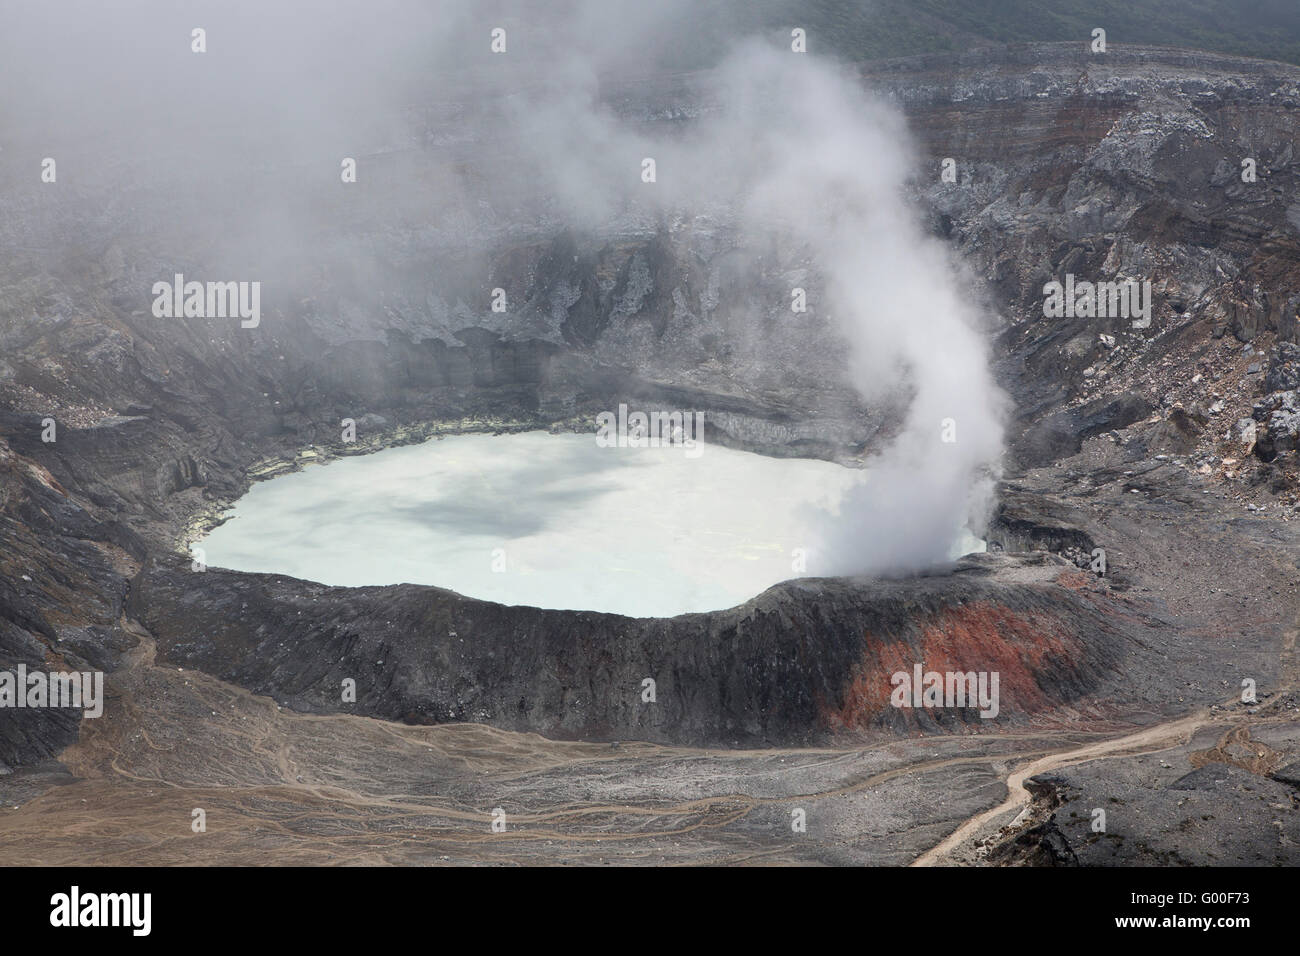 Steam rises from the crater of Poas Volcano in Parque Nacional Volcan Poas (Poas Volcano National Park) in Costa - Stock Image